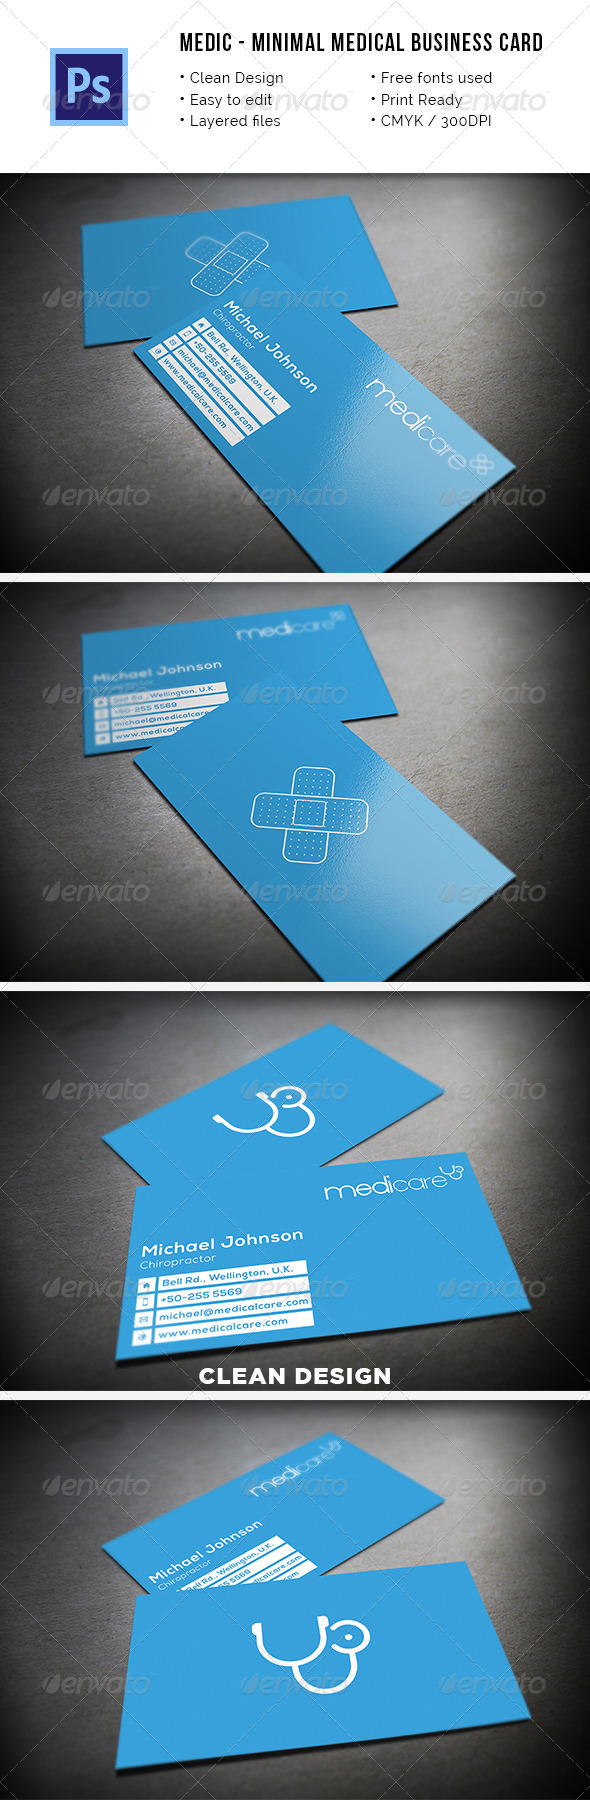 Industry specific business card templates from graphicriver page 30 reheart Images